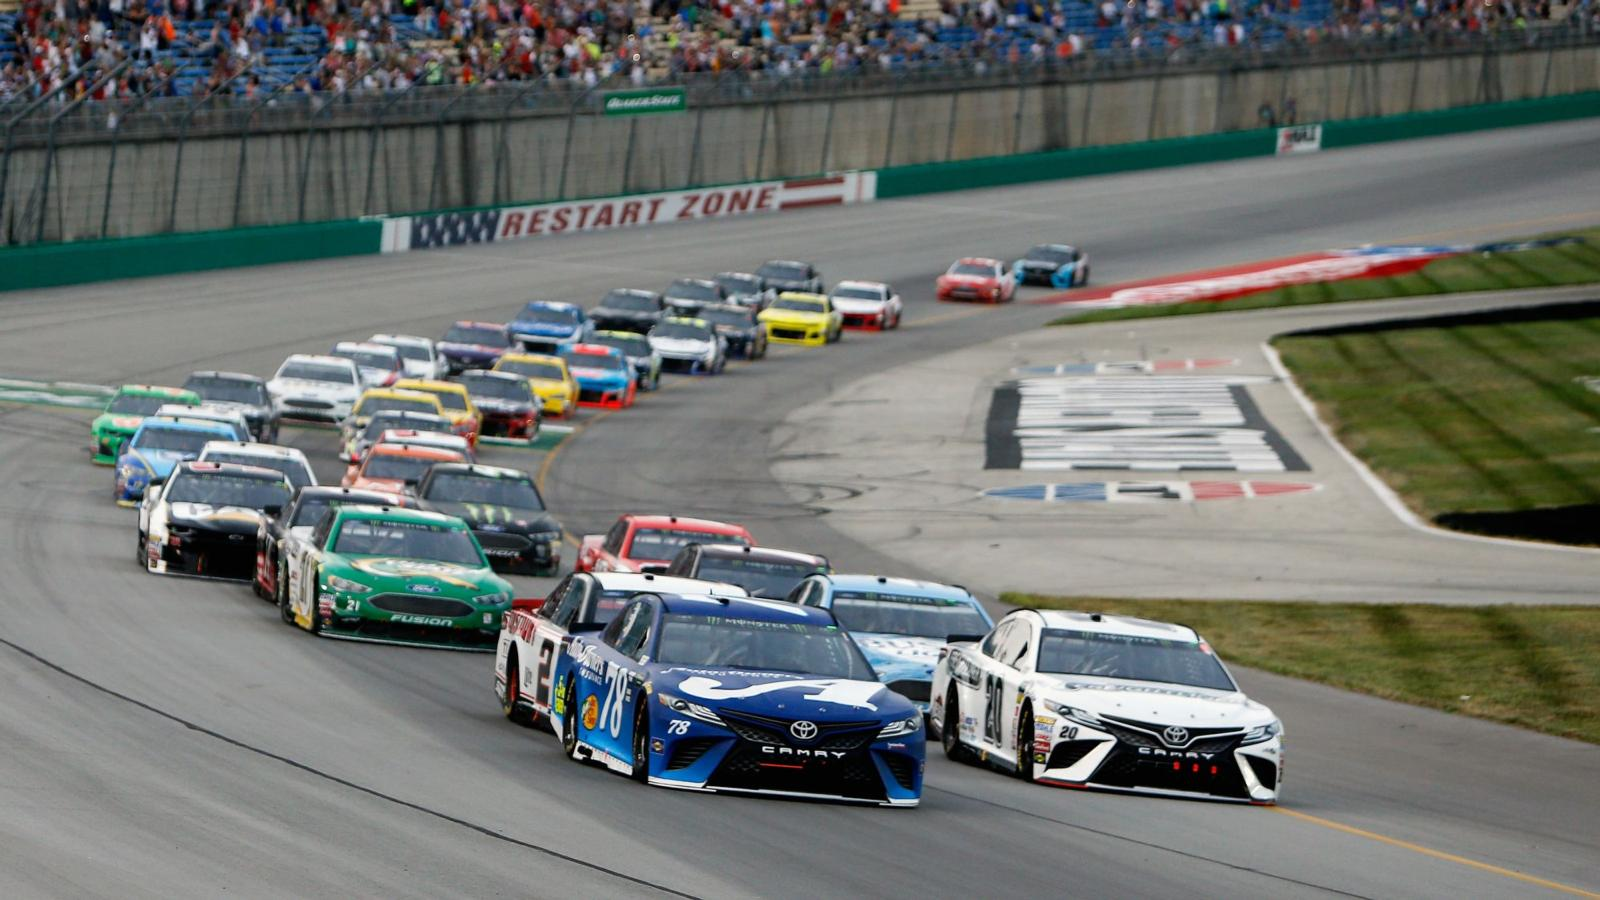 Vehicle Manufacturers In Nascar Nascar Announces 2019 Baseline Rules Packages For Monster